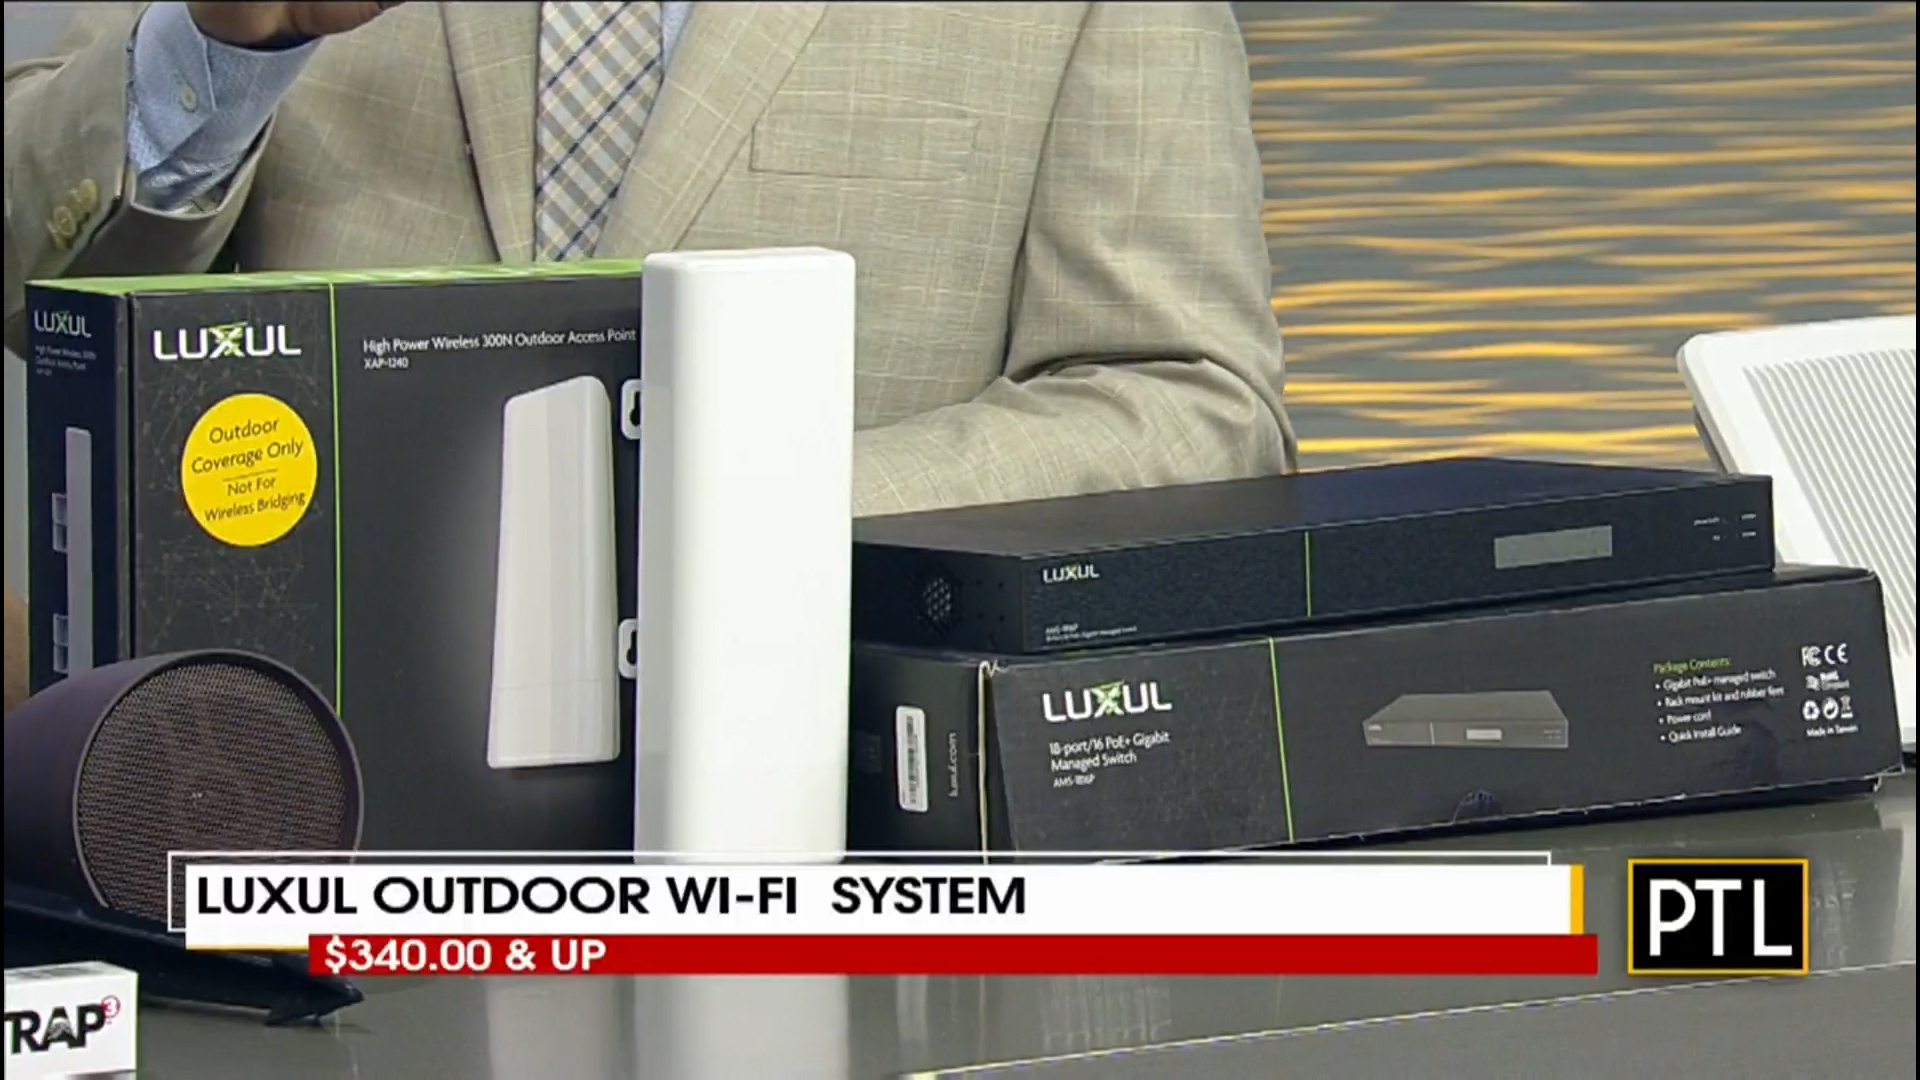 LUXUL OUTDOOR Wi-Fi SYSTEM - $340.00 & UpShop NowInstalled by Certified System Integrator